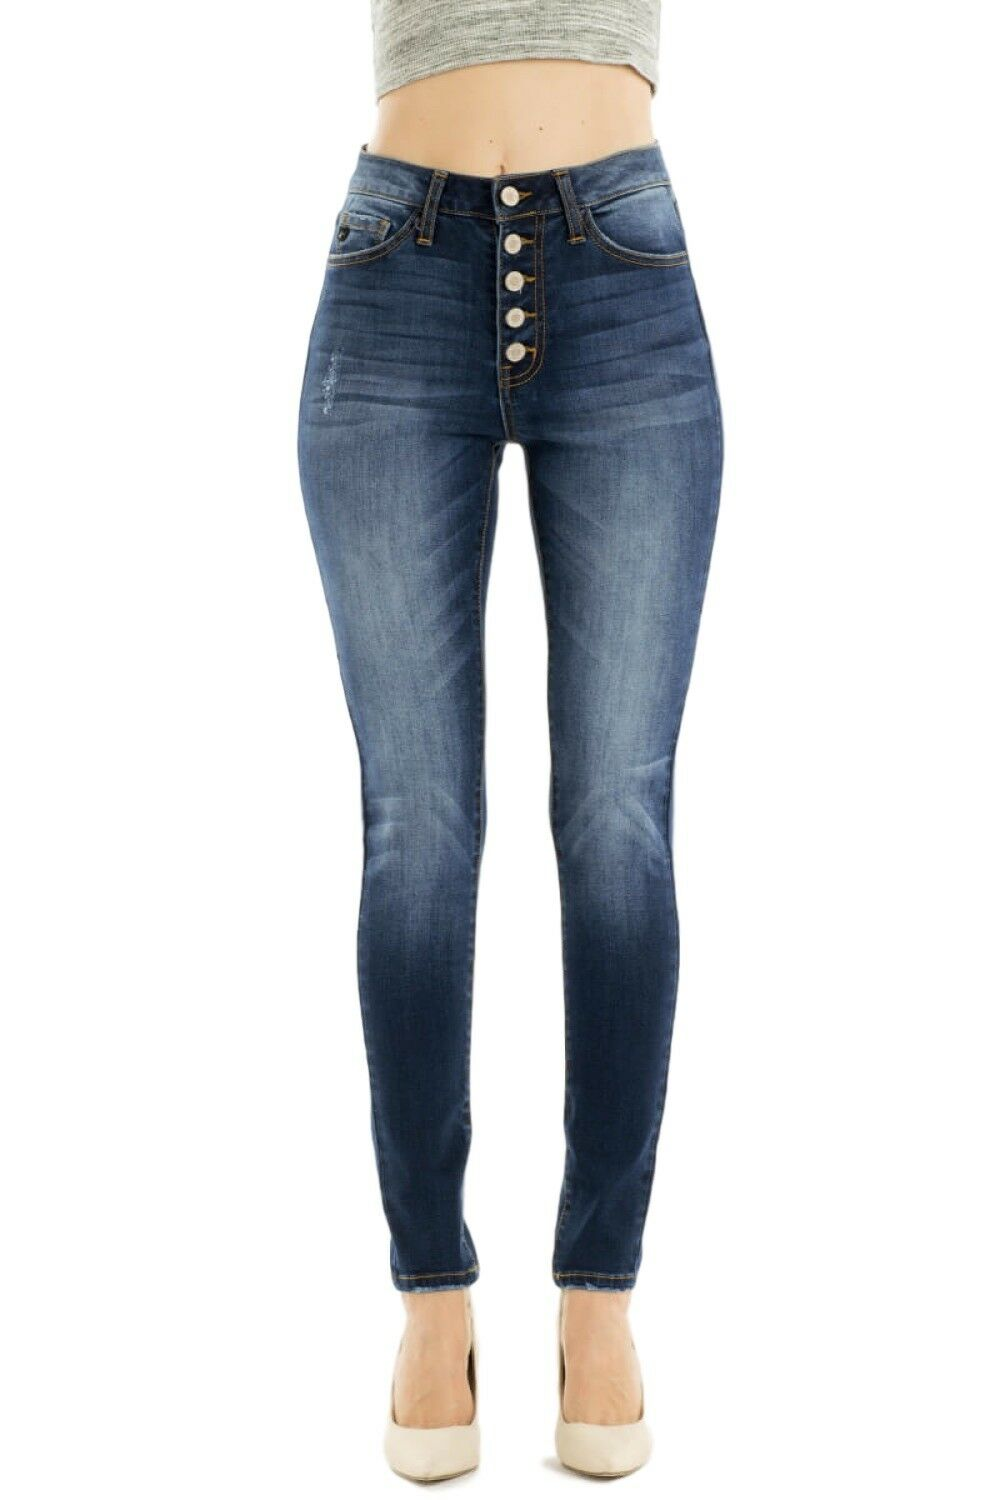 KanCan Jeans Leary-Charlene High Rise Dark Wash Button Fly Skinny Jeans KC7114D